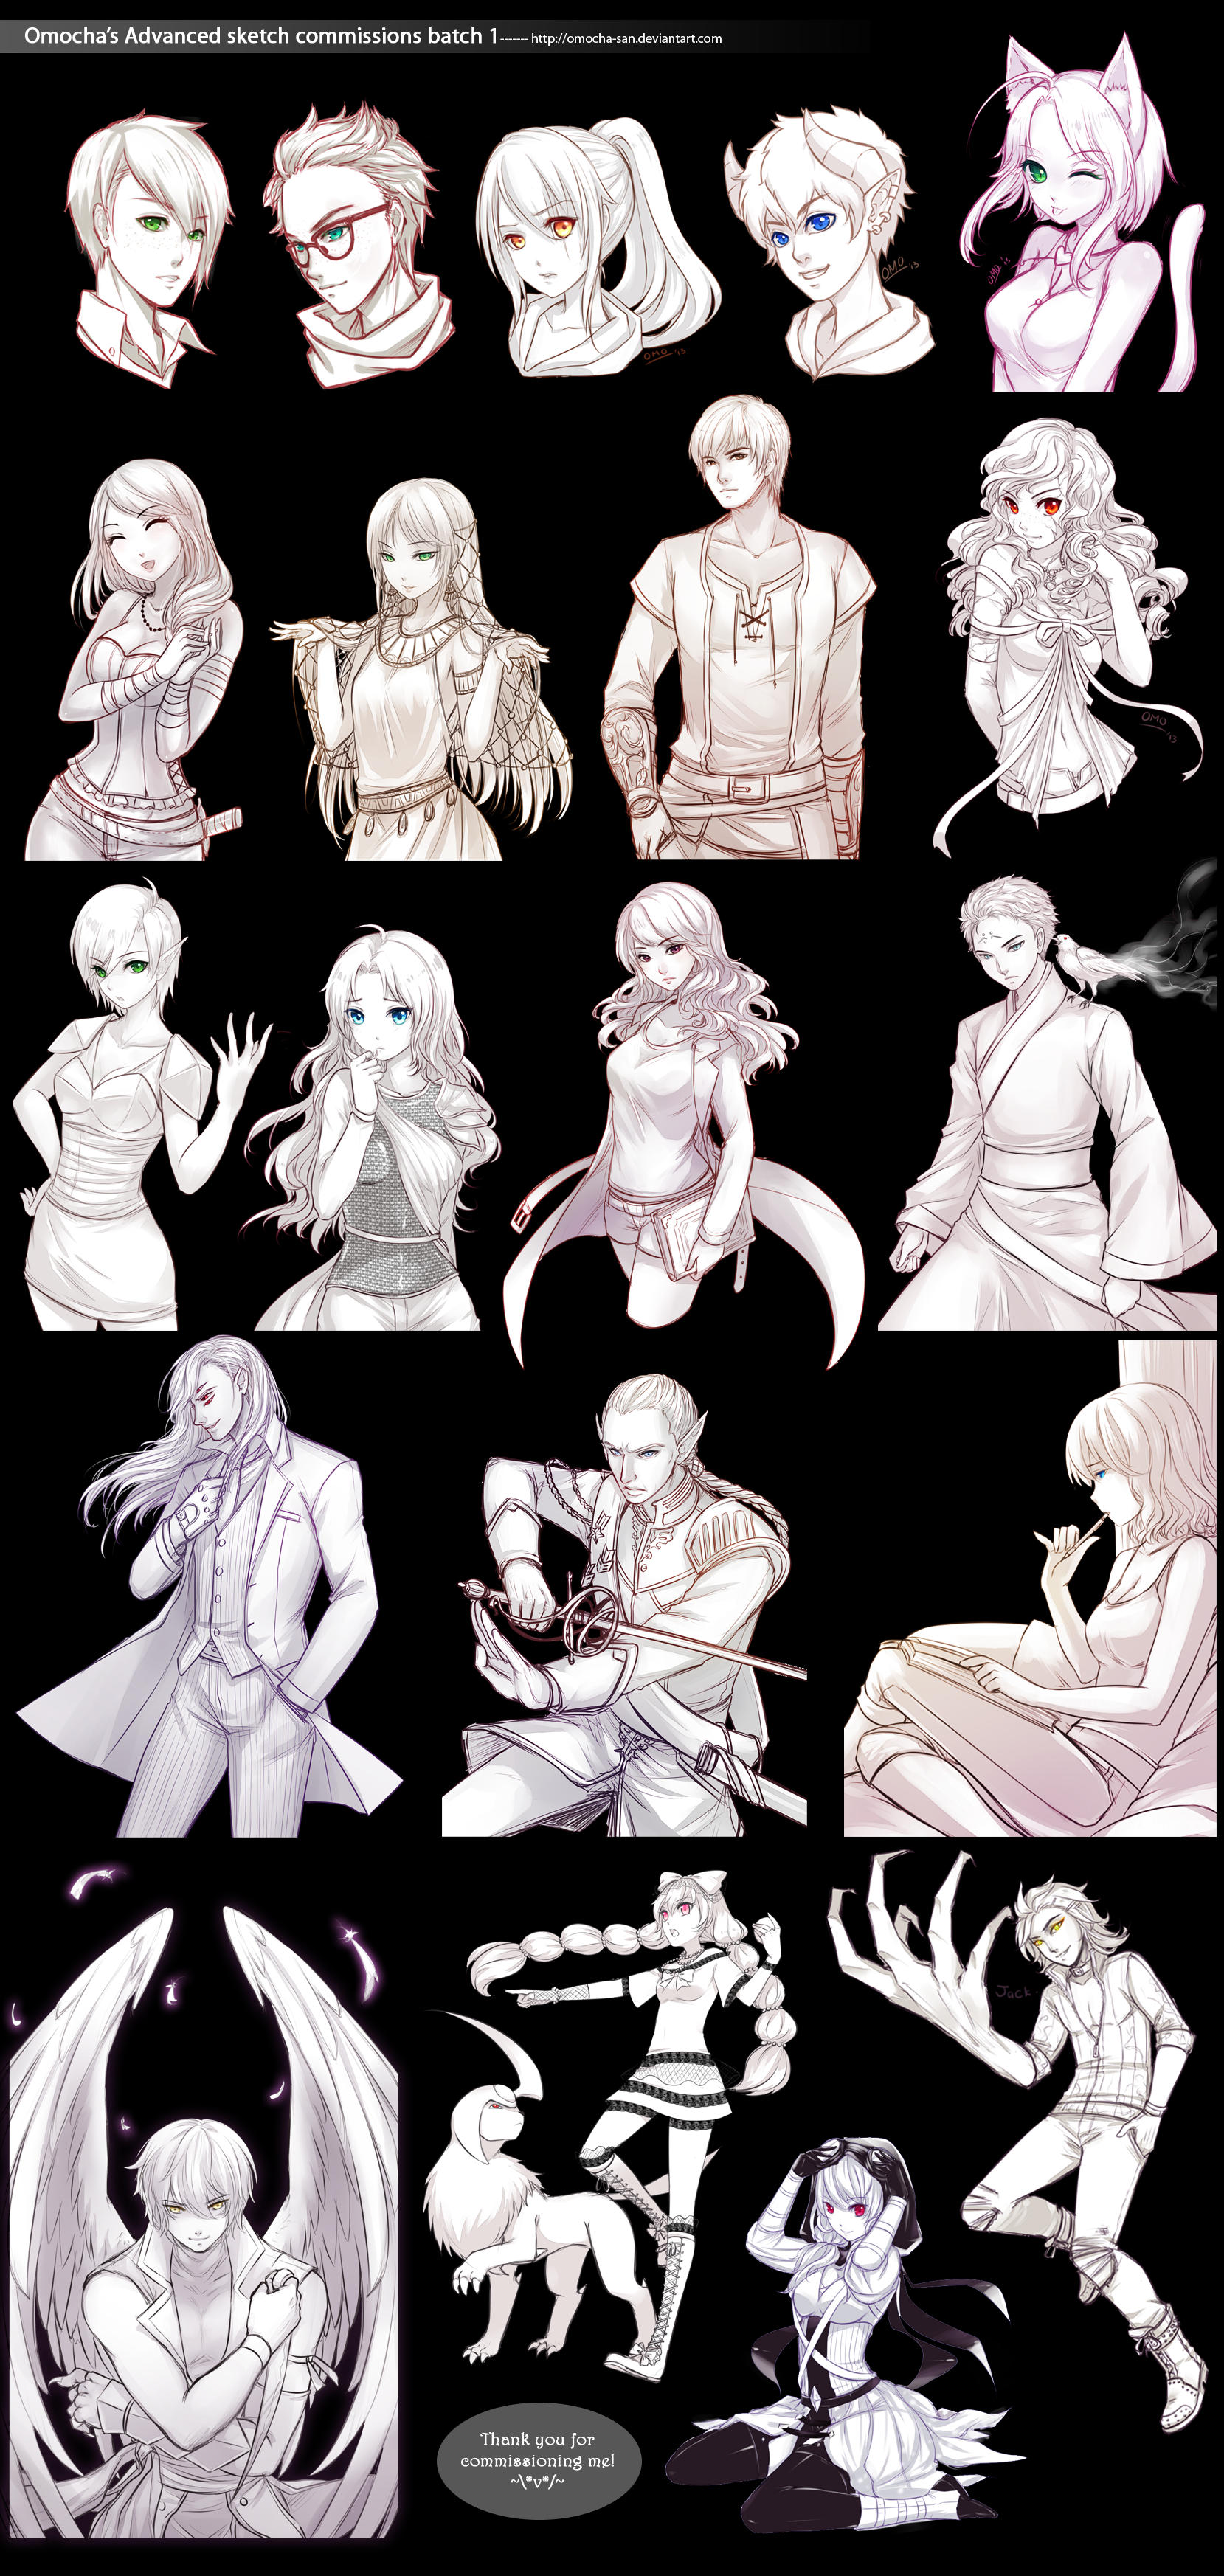 Commission Advanced Sketch Batch 1 By Zenithomocha On Deviantart Art Reference Poses Anime Drawings Black Clover Anime